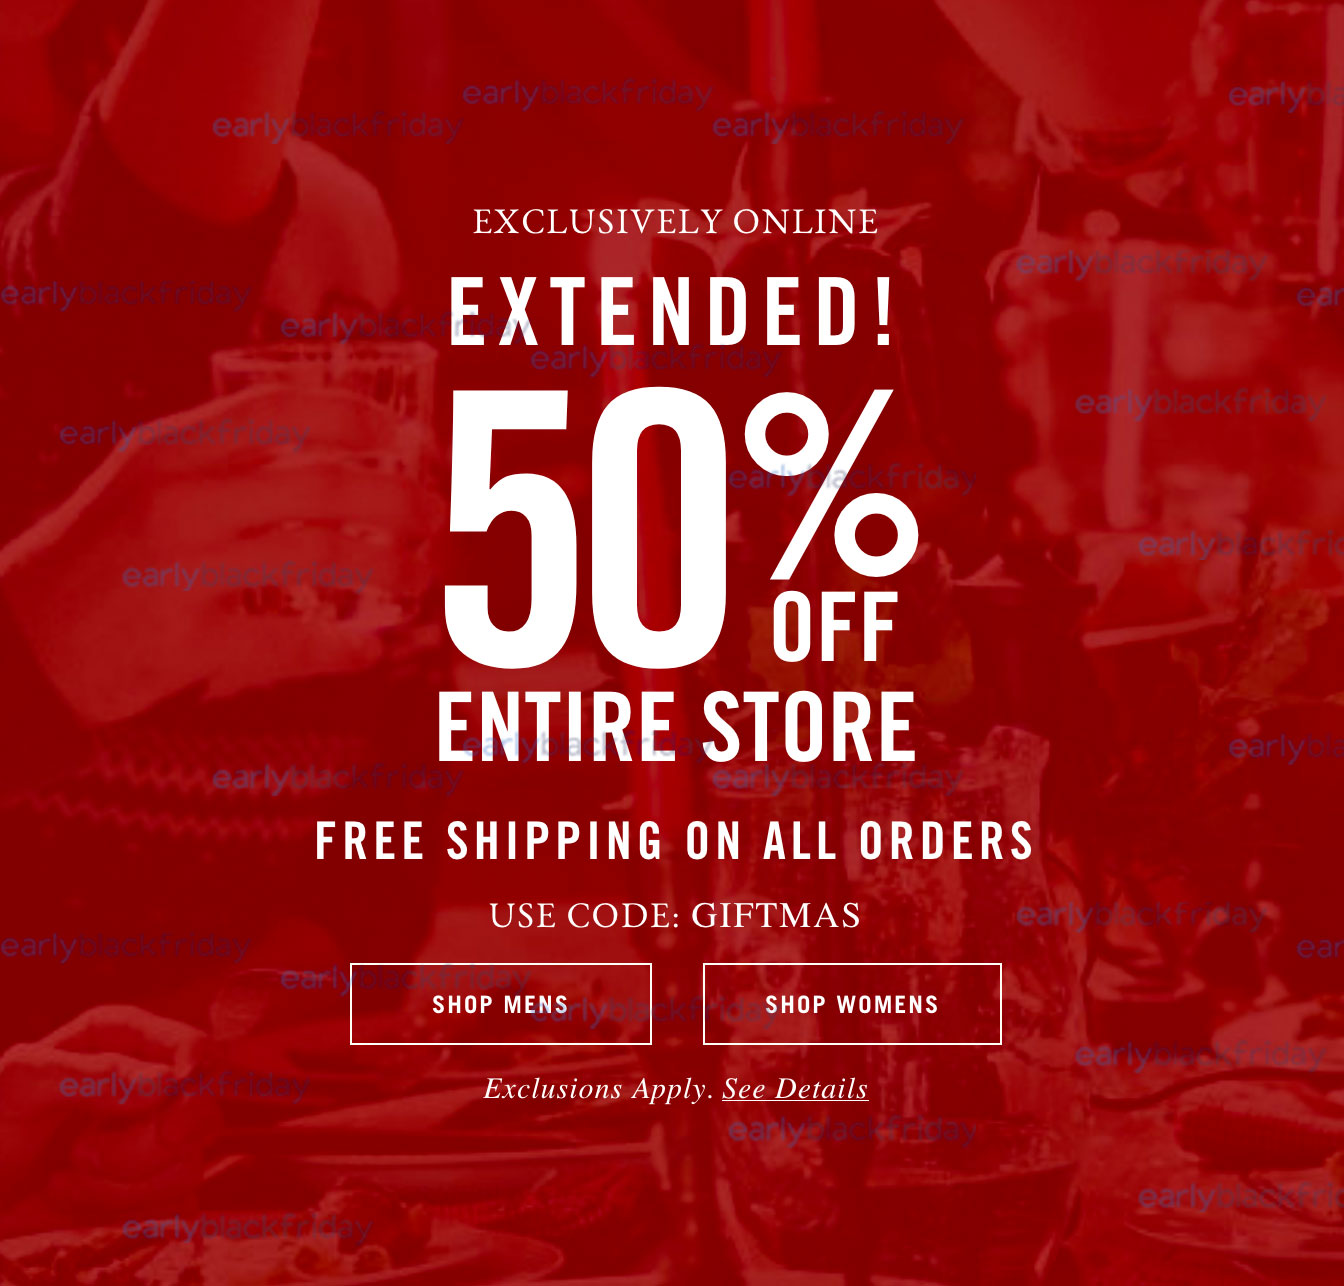 Abercrombie and fitch coupons black friday 2018